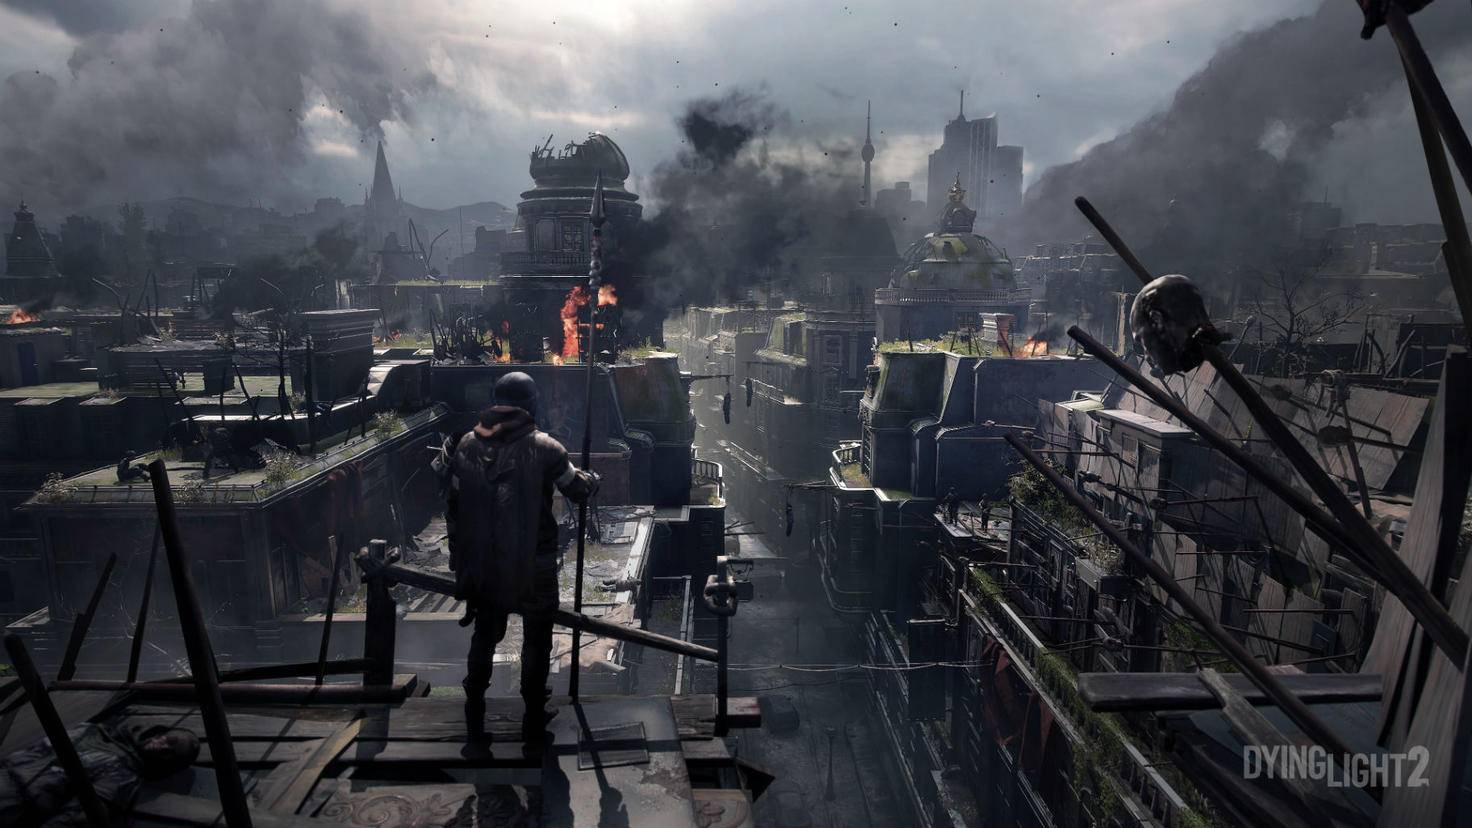 dying-light-2-screenshot-spielwelt